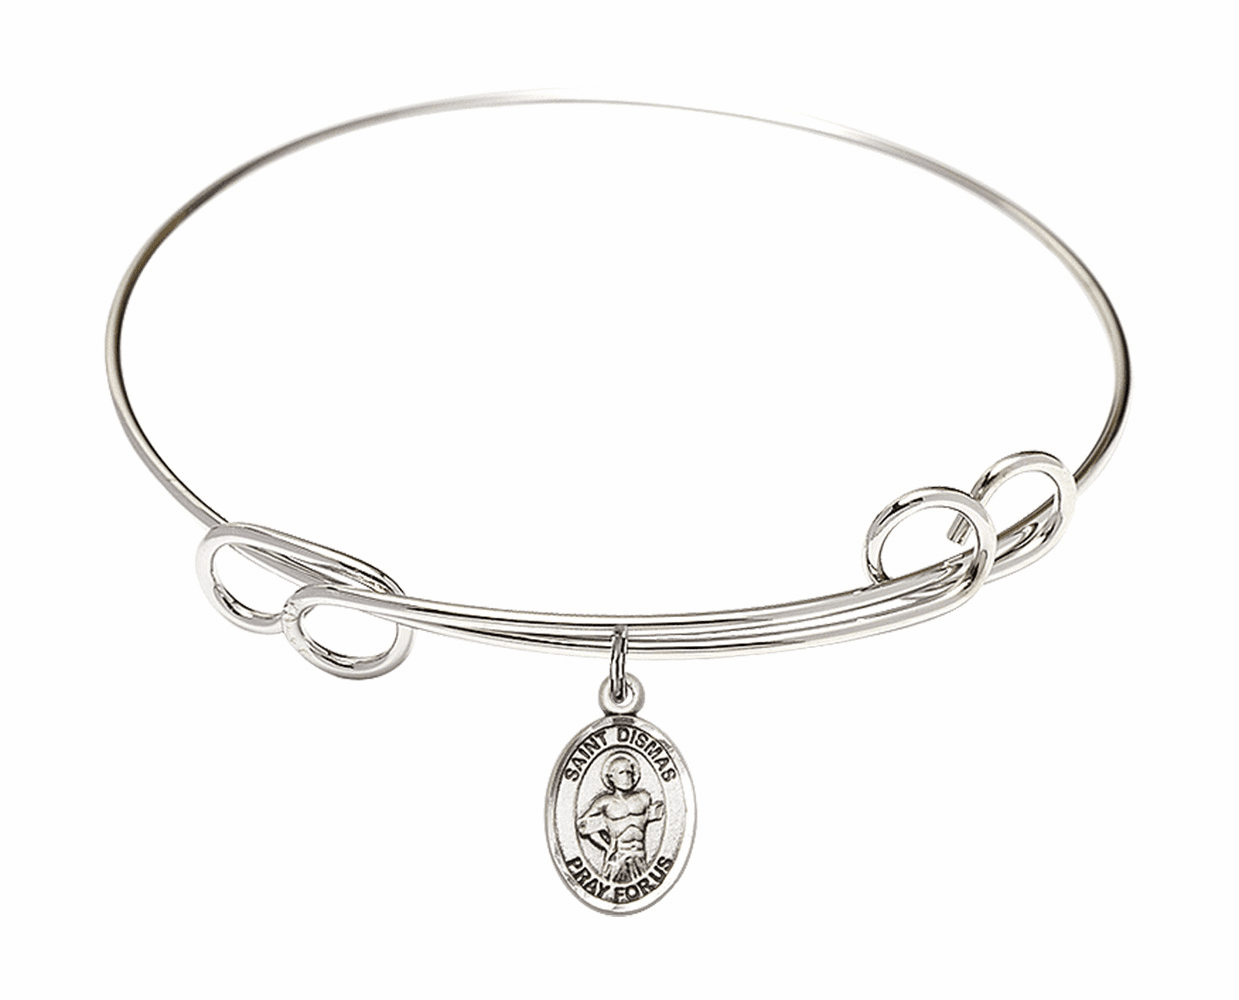 Round Loop St Dismas Bangle Charm Bracelet by Bliss